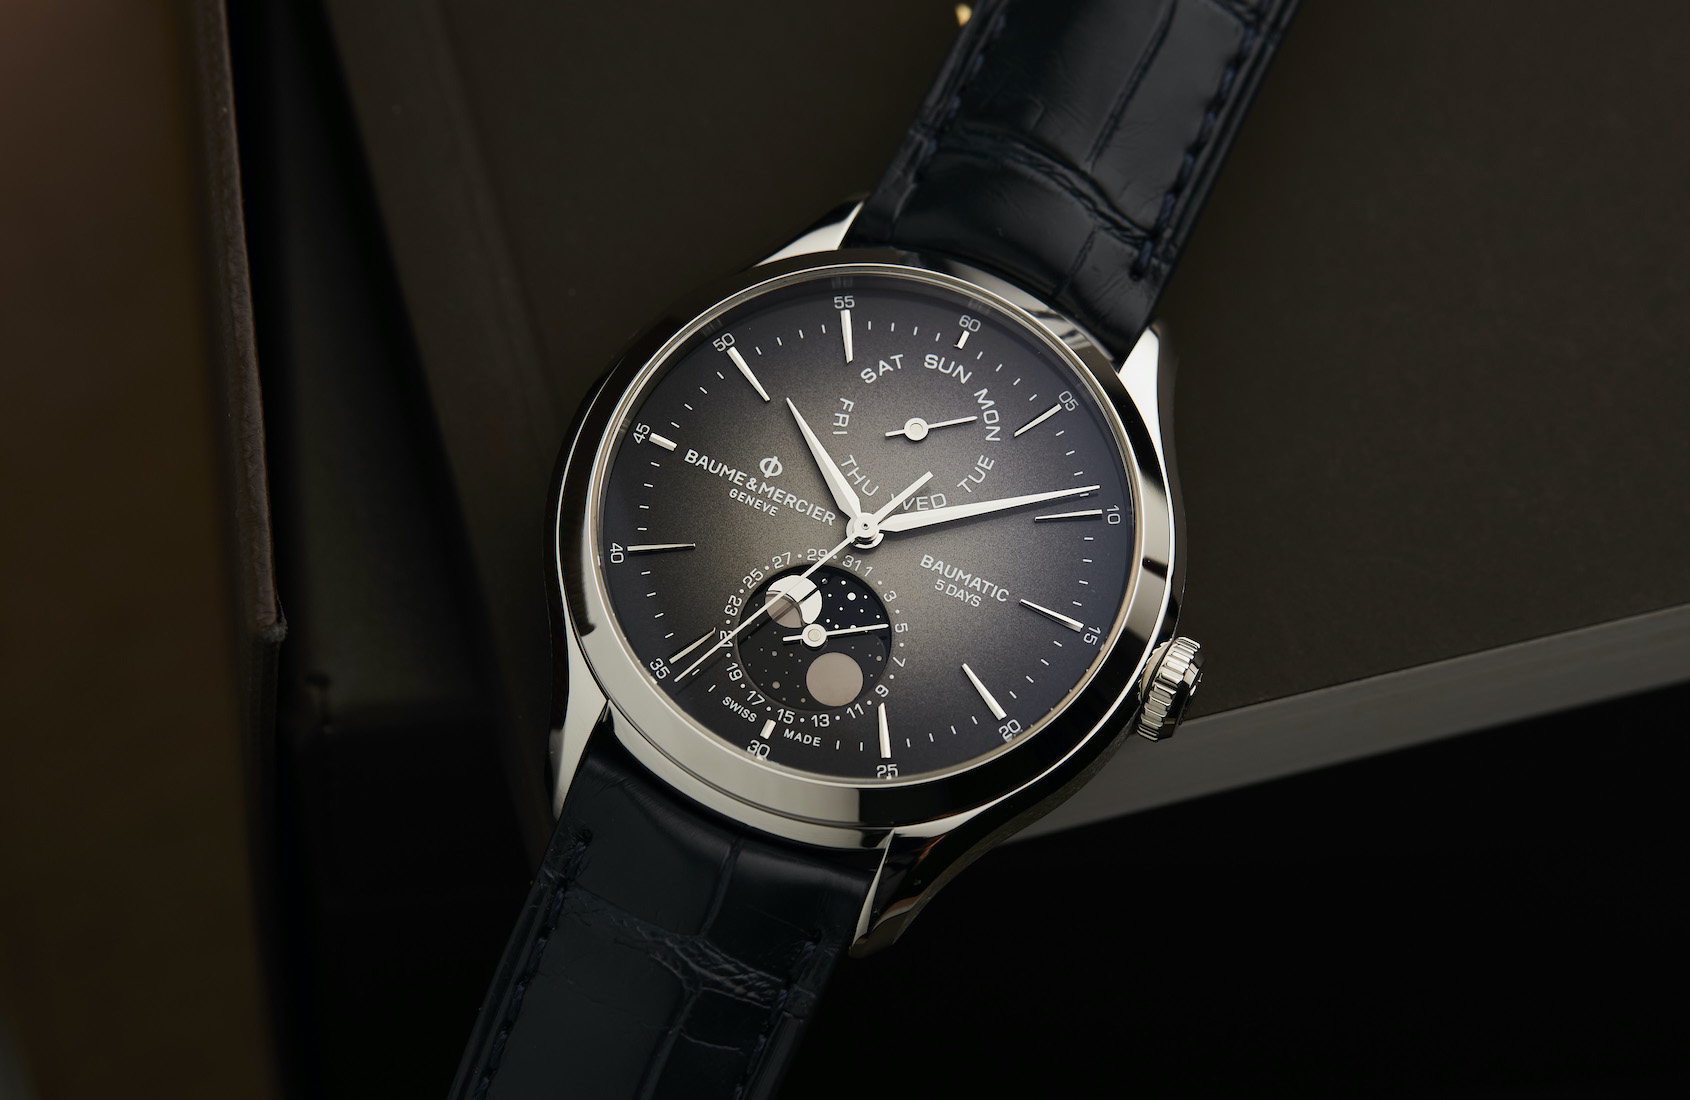 HANDS-ON: Let's be real, the Baume & Mercier Clifton Baumatic Automatic Day Date Moon Phase is stupendously good-looking